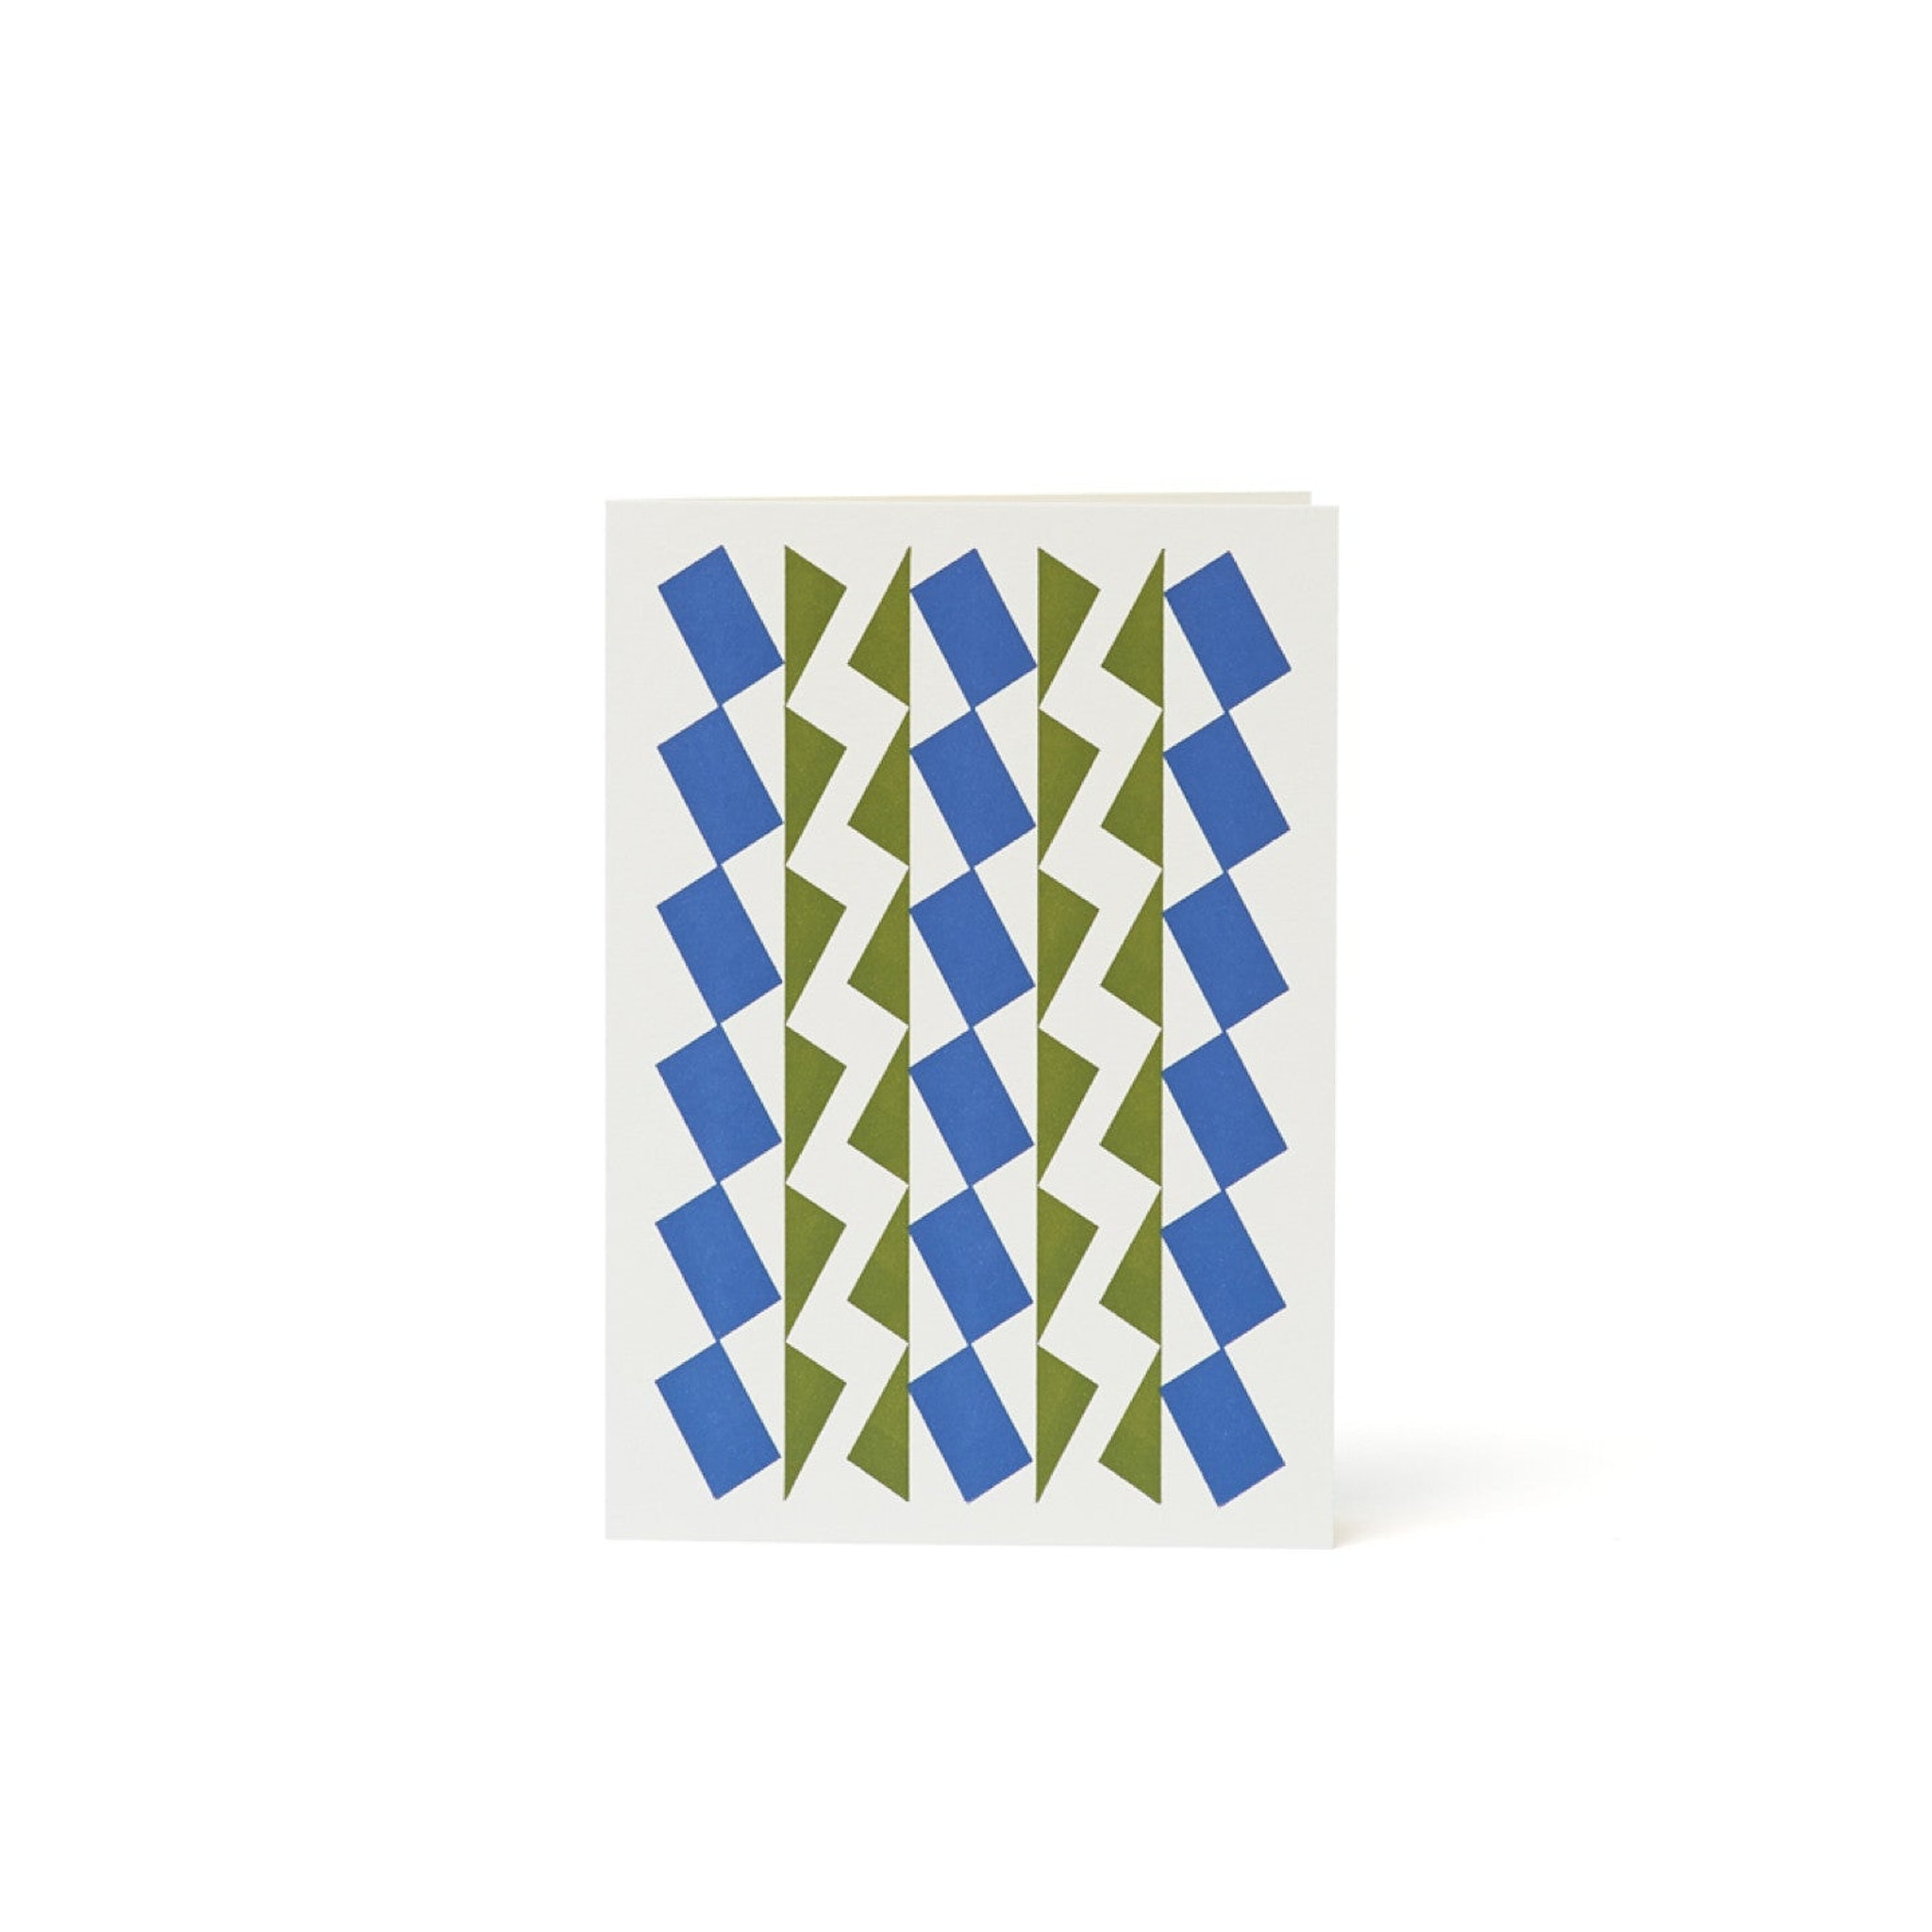 Dancers Letterpress Card - Cornish Blue and Olive by Esme Winter